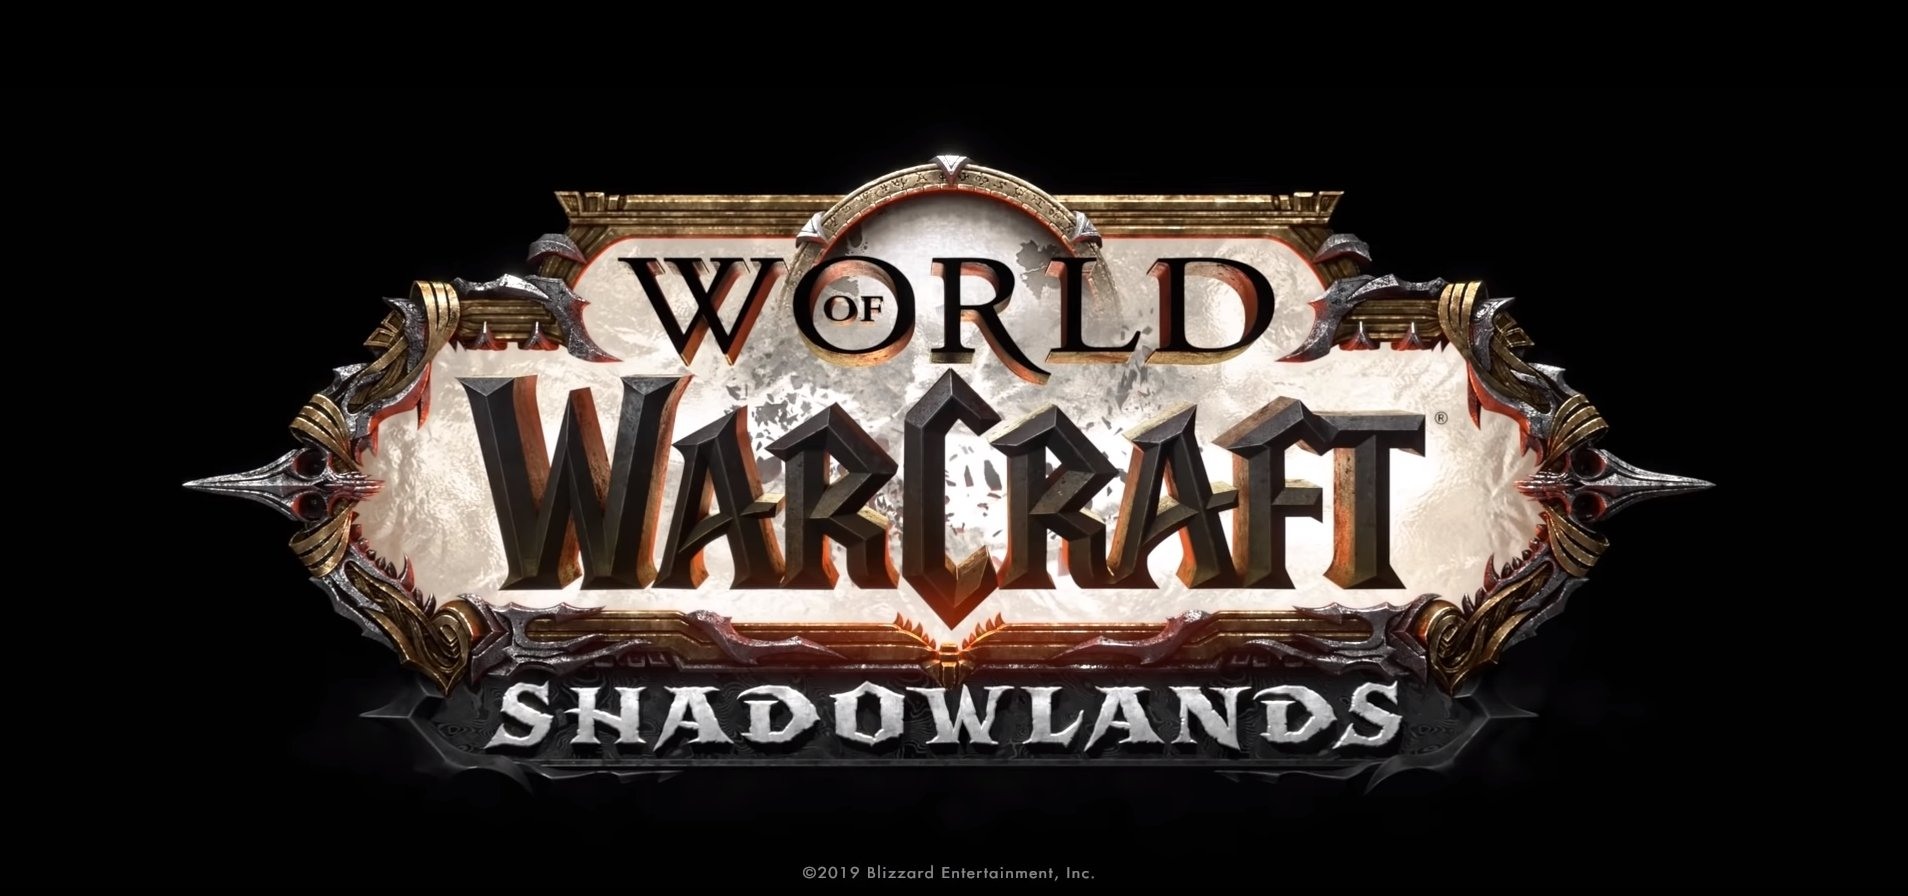 Blizzard Has Released New World Of Warcraft: Shadowlands Merch!